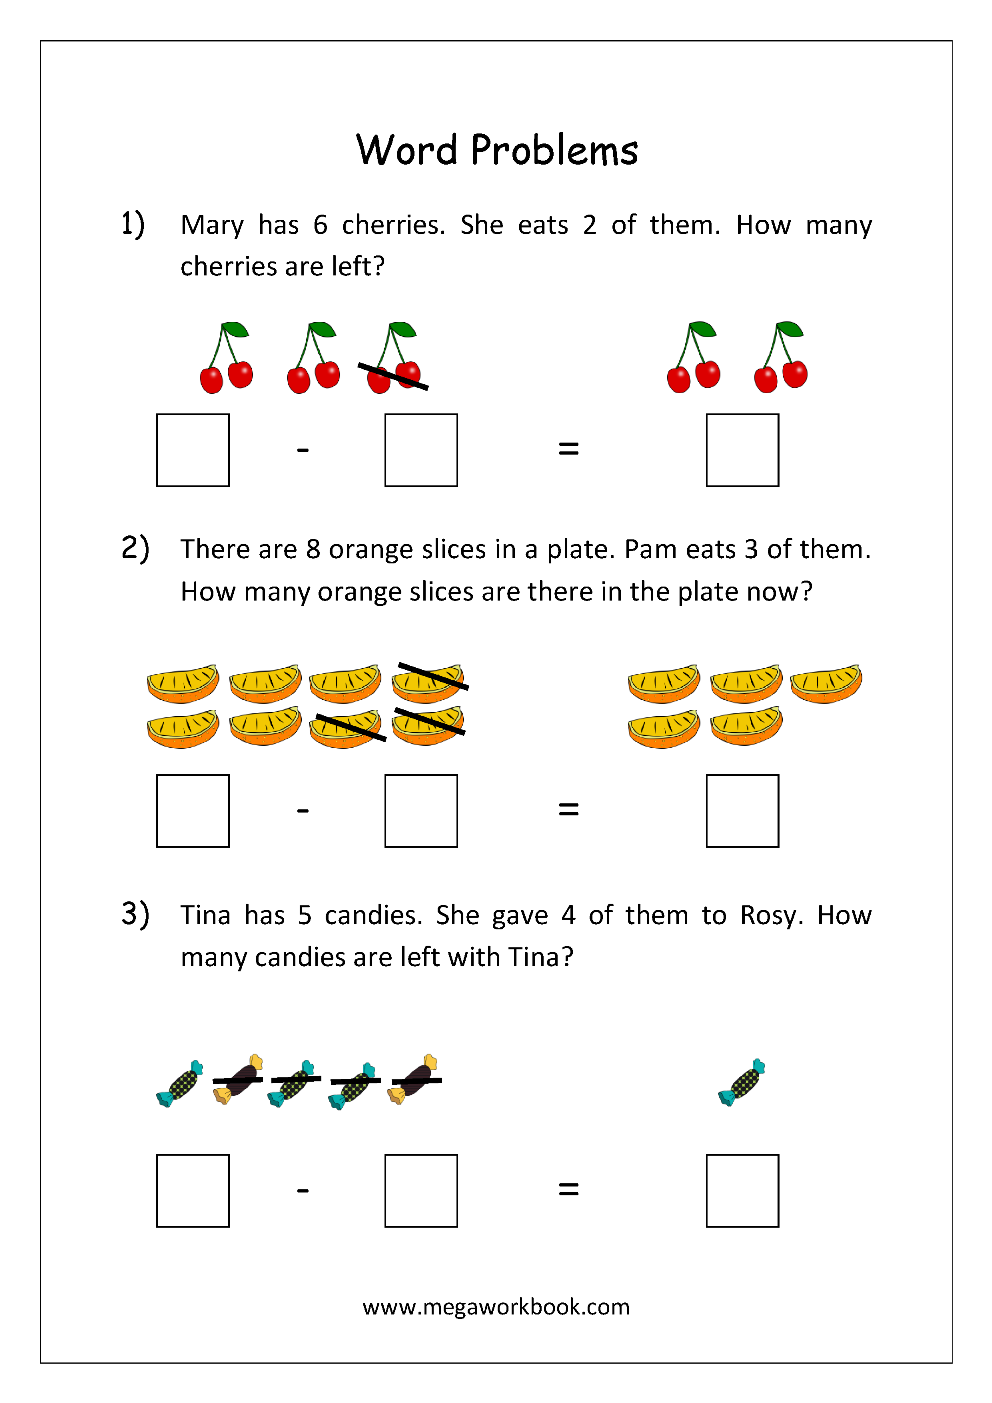 Word Problems MegaWorkbook – Subtraction Worksheets Word Problems